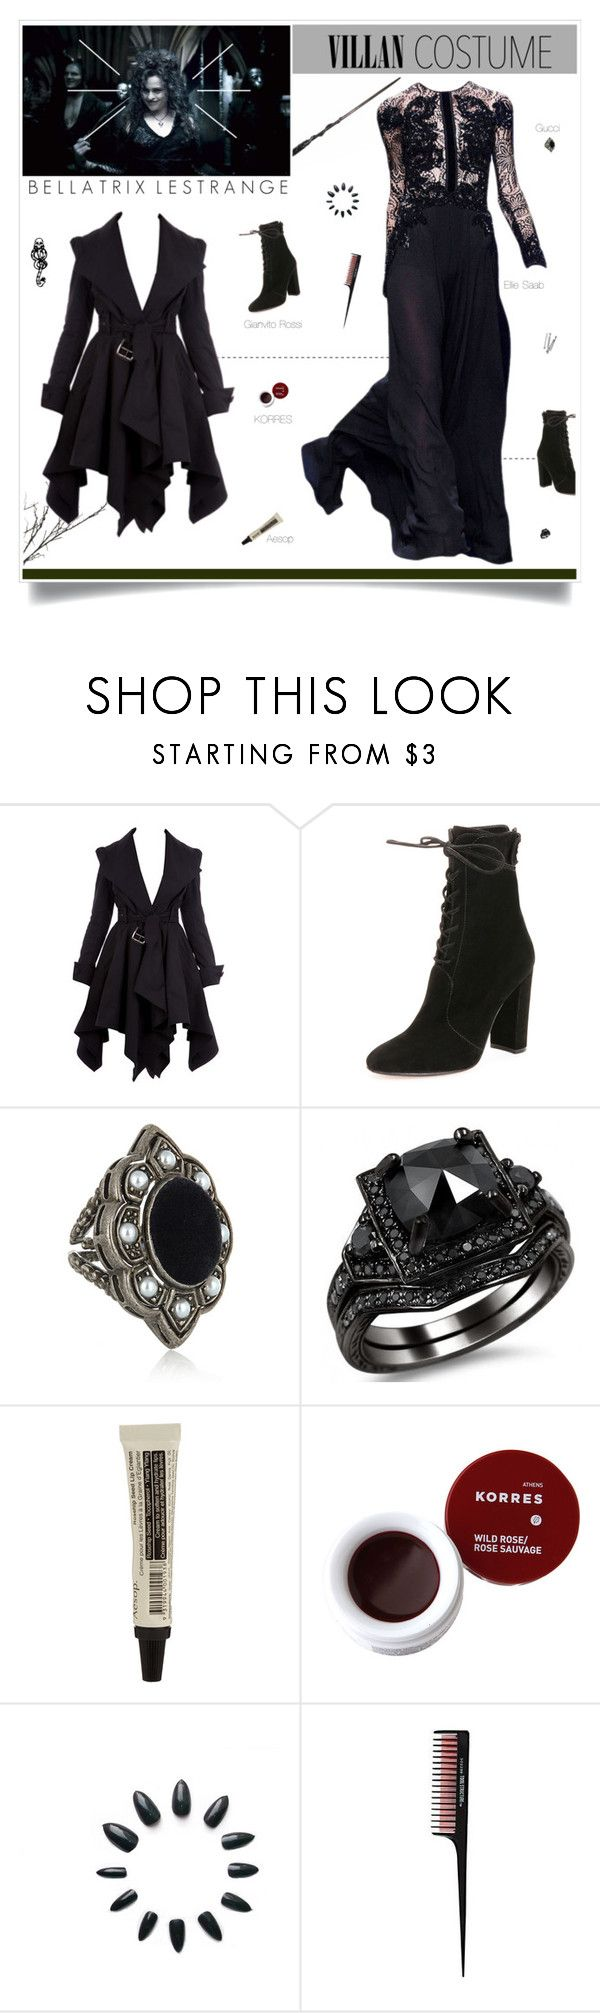 """Bellatrix Lestrange Costume"" by amberelb ❤ liked on Polyvore featuring Gianvito Rossi, Gucci, BOBBY, Aesop, Korres and mark."